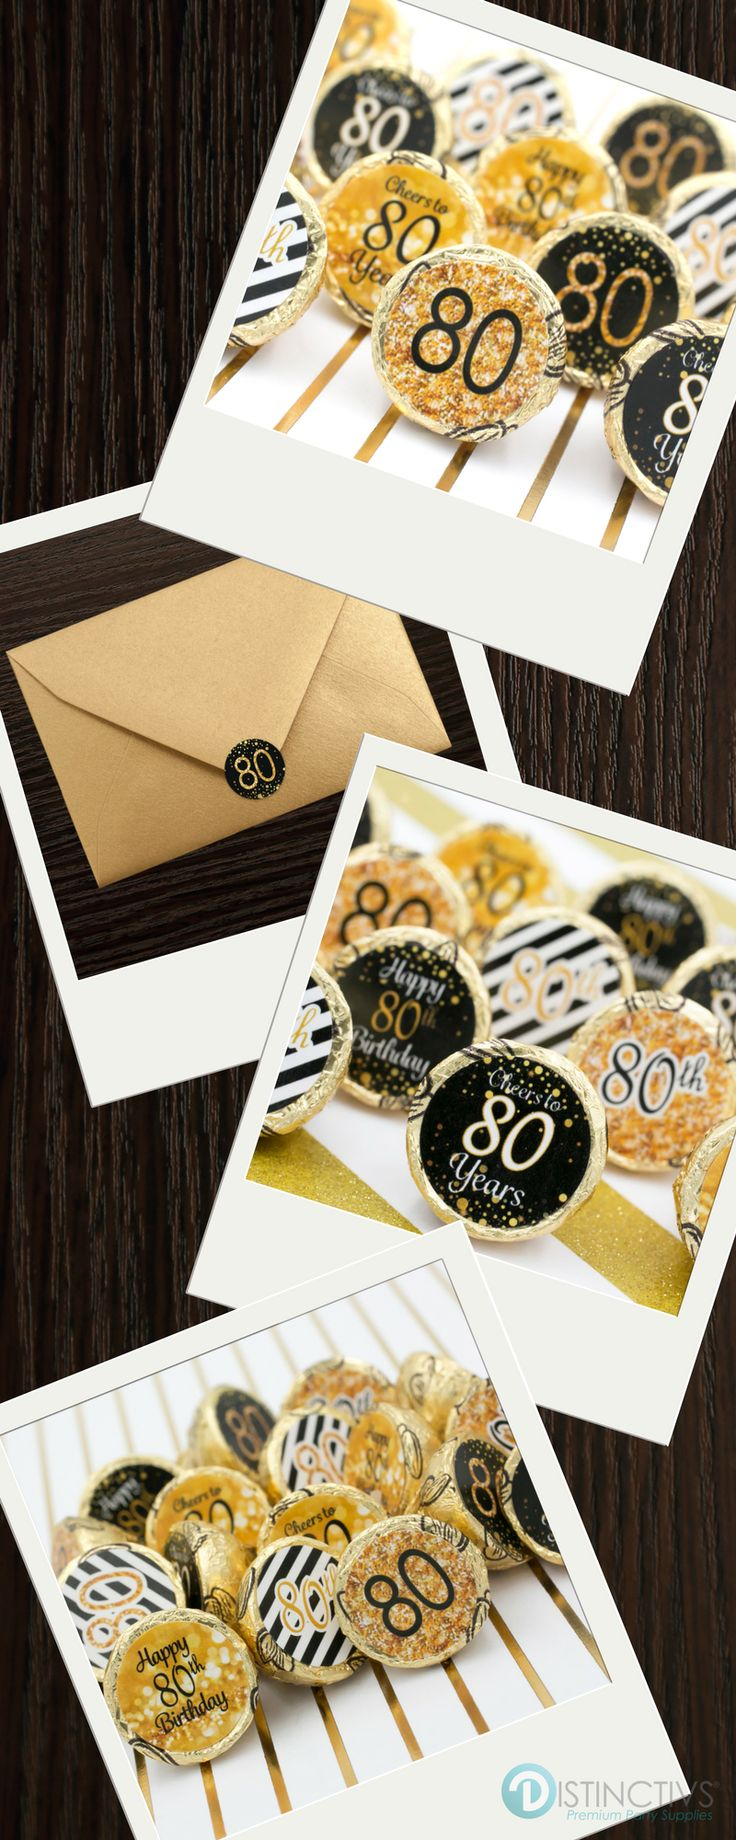 Celebrate this special birthday milestone with these gold and black 80th birthday party favor stickers that will be a sure hit at your party. Designed to fit perfectly on the bottom of Hershey kisses